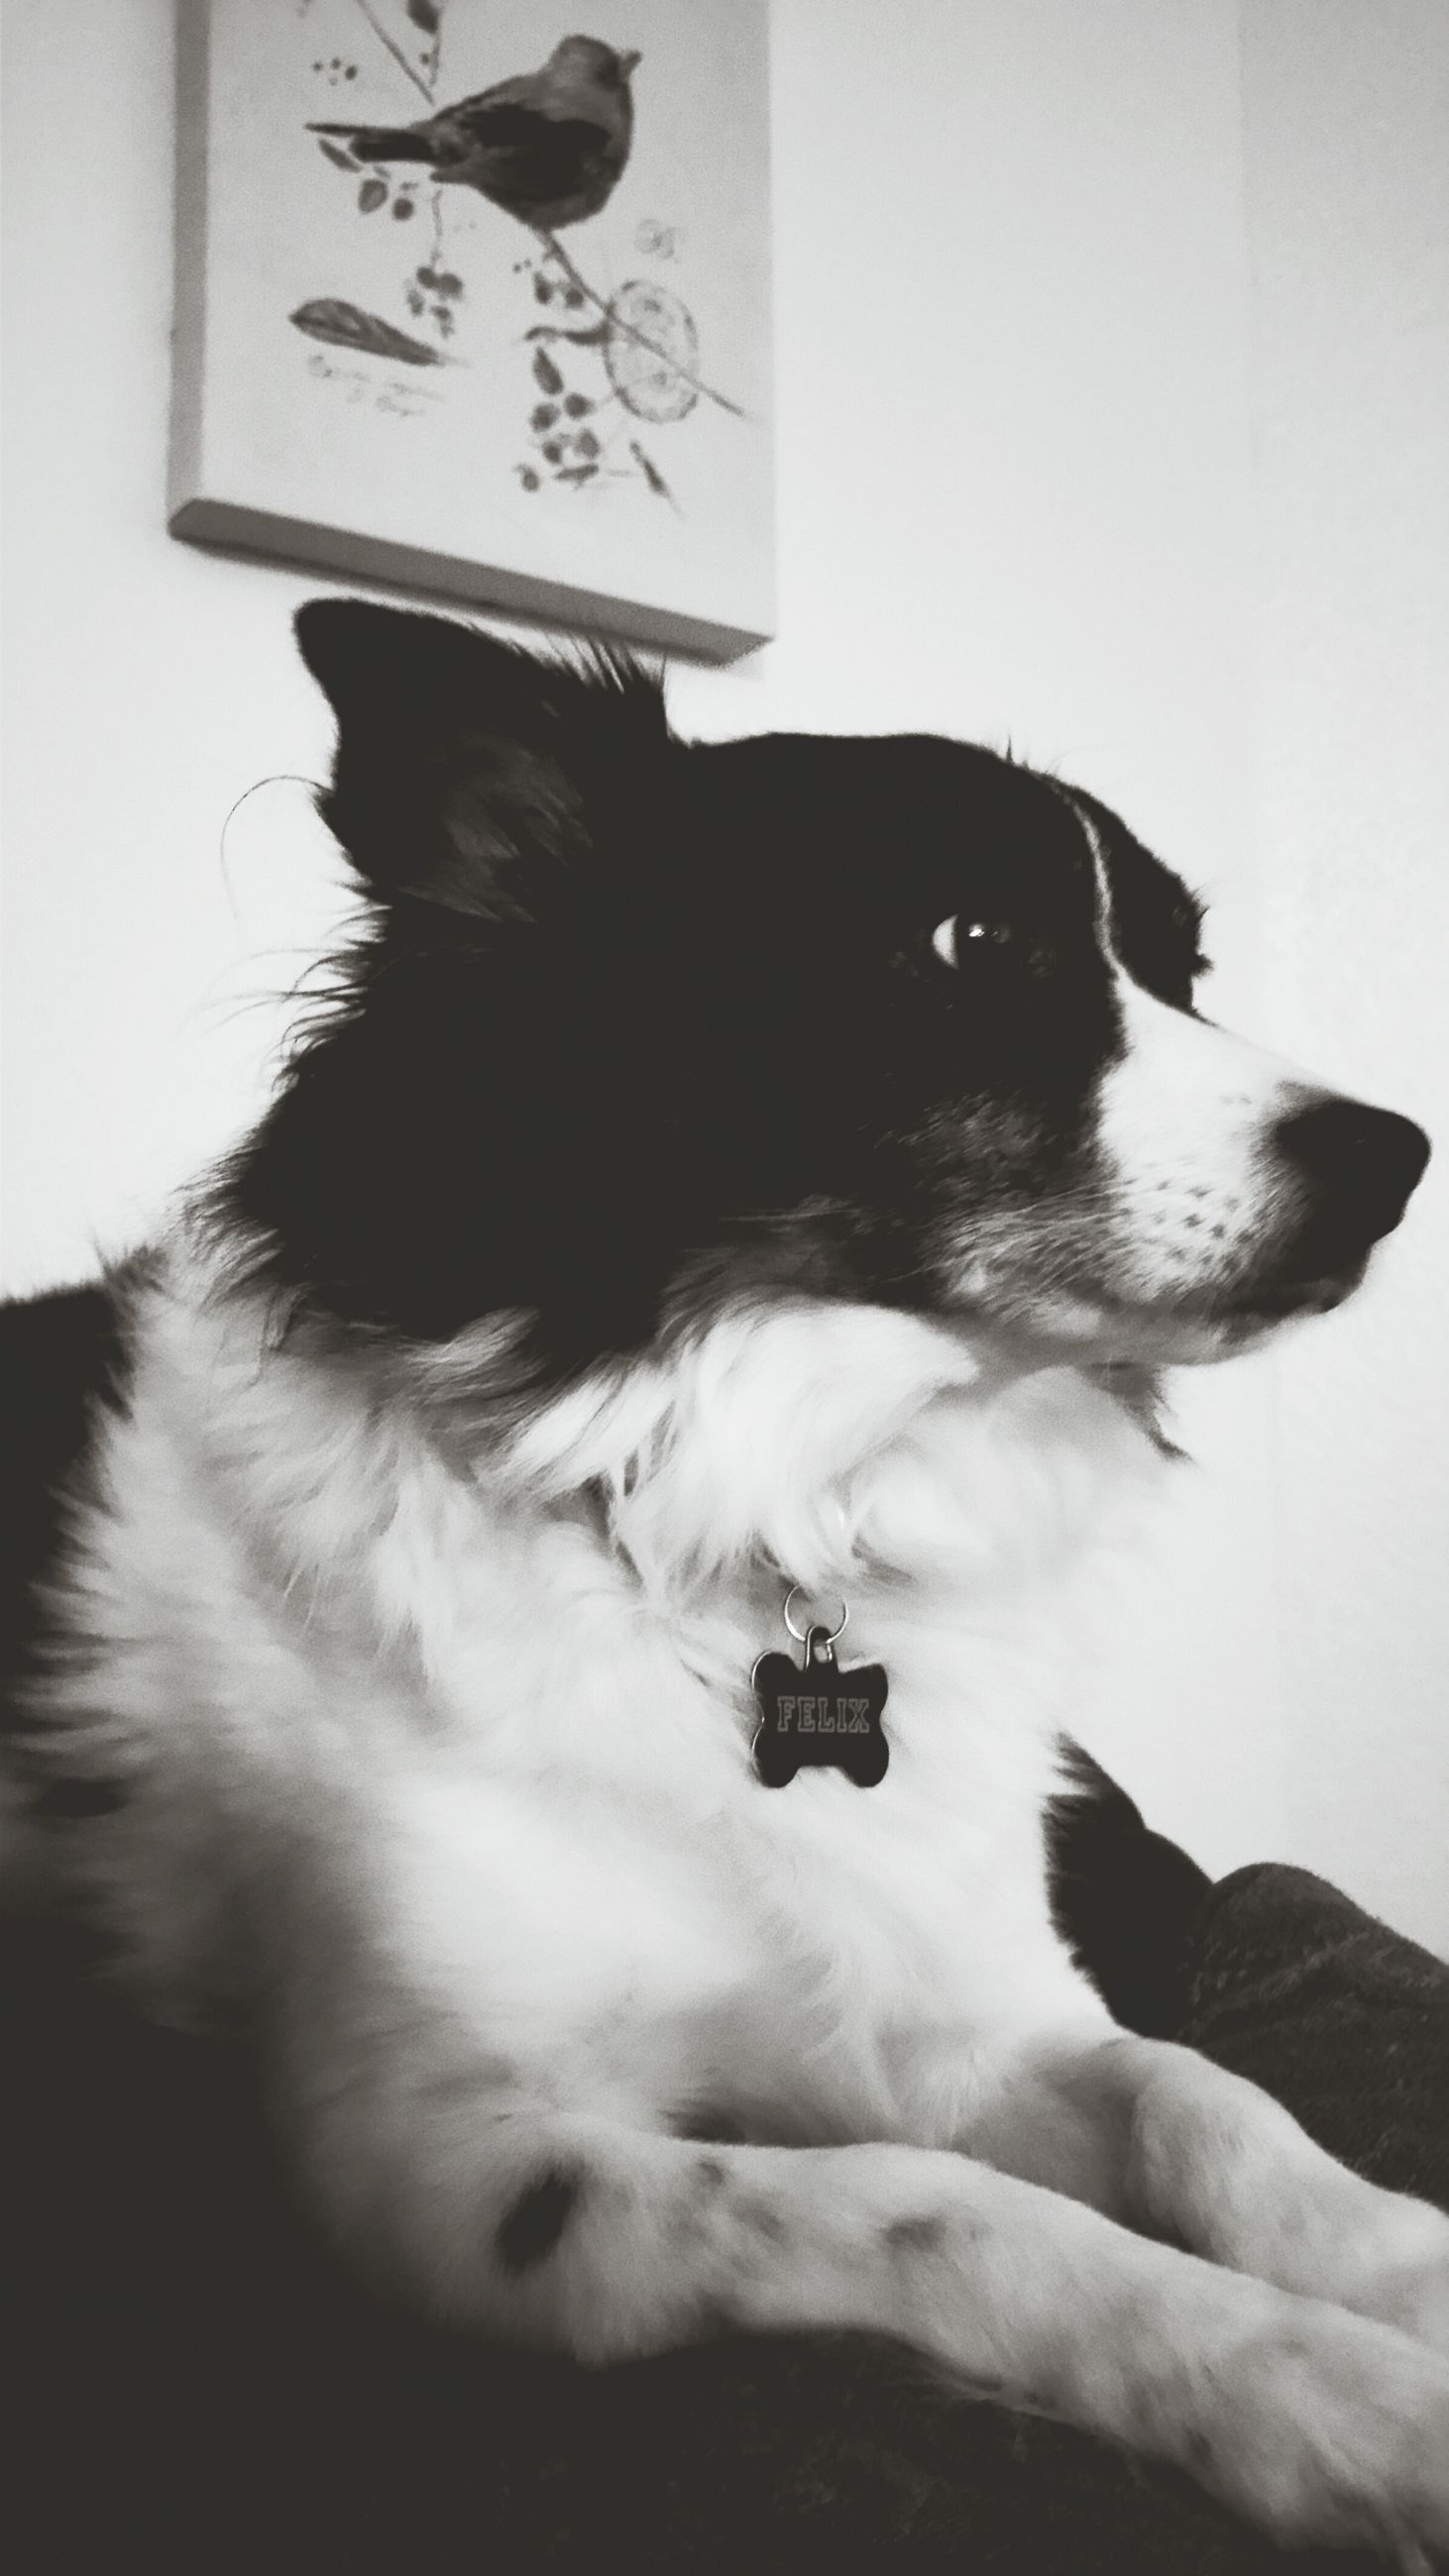 pets, domestic animals, one animal, mammal, animal themes, dog, indoors, lifestyles, black color, leisure activity, men, home interior, unrecognizable person, white color, side view, high angle view, communication, sitting